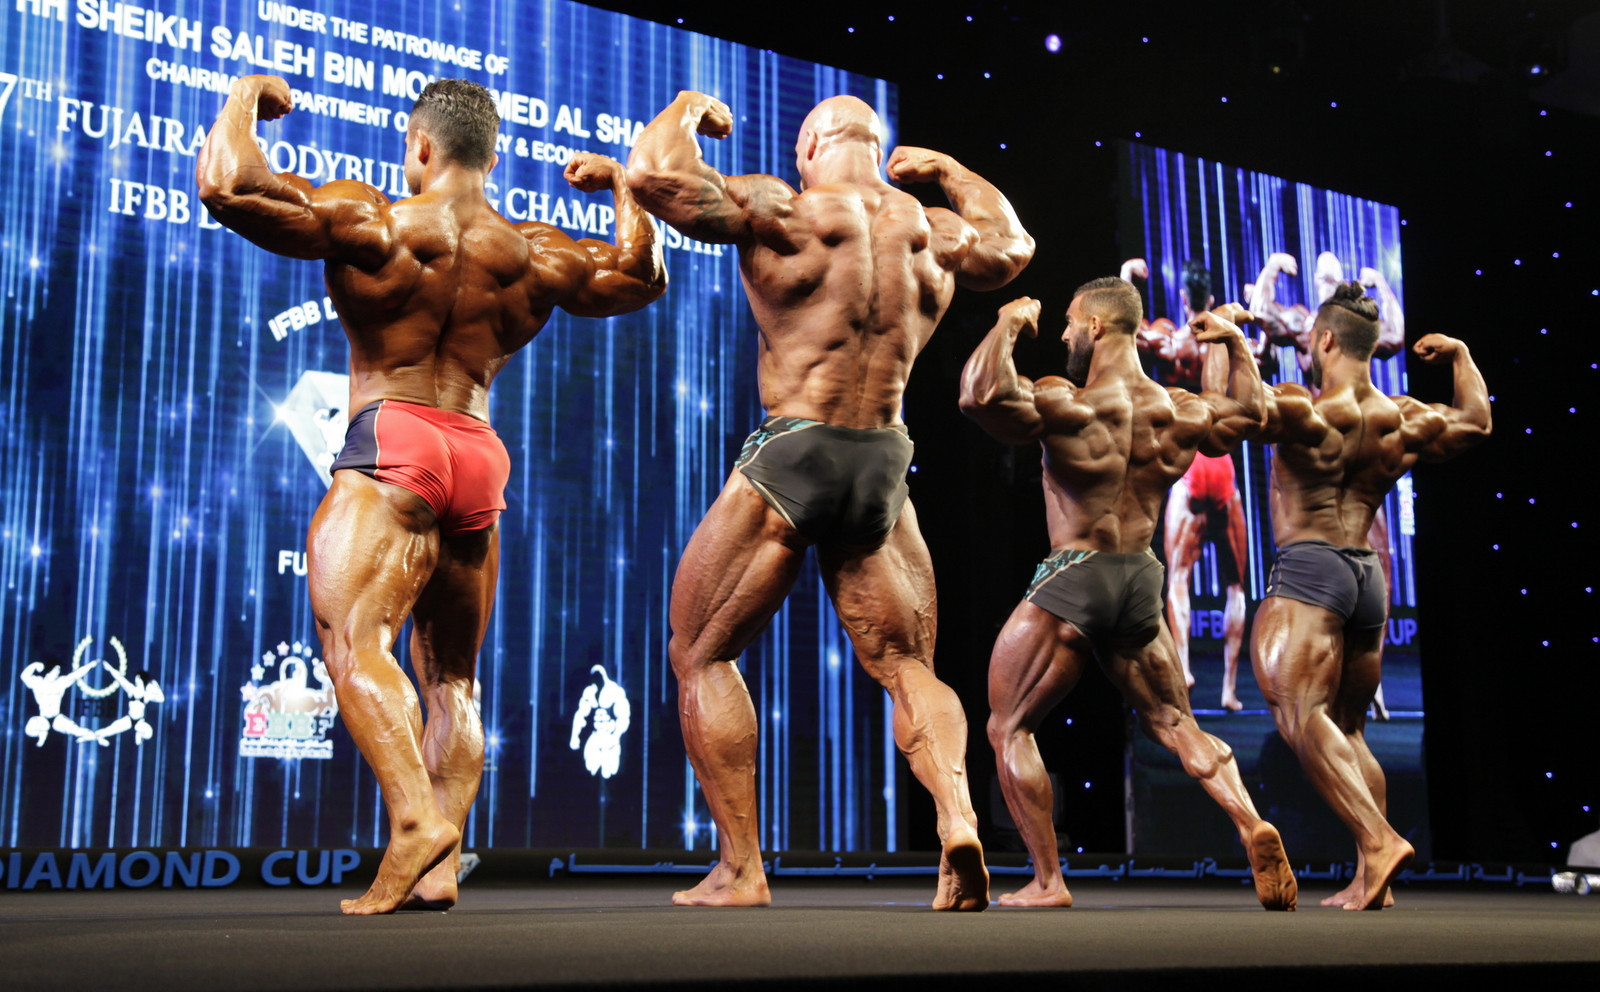 The classic physique division will make its debut at the 2018 Arnold Classic Europe in Barcelona ©IFBB